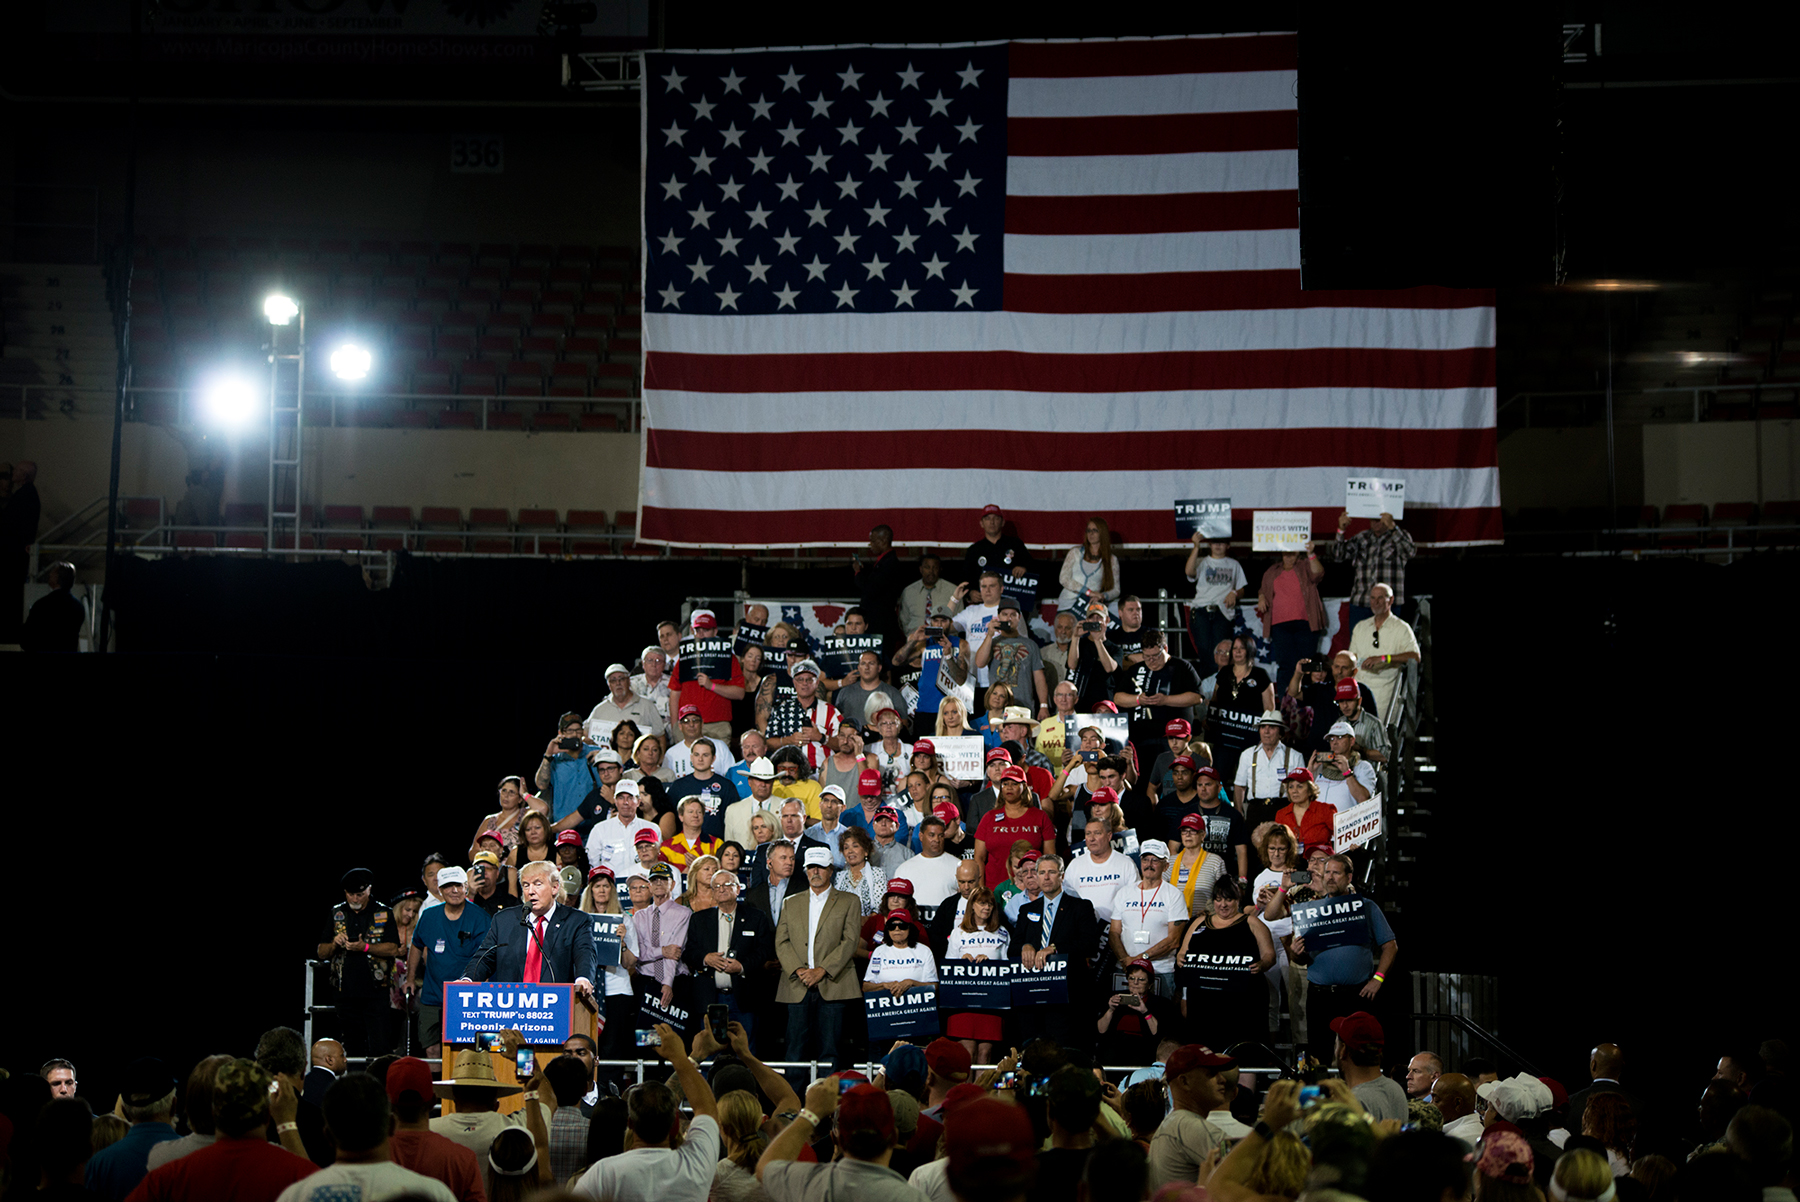 Republican presidential candidate Donald Trump holds a rally in Phoenix. Trump has claimed fraudulent voters will be able to cast multiple ballots without voter ID laws in place. (Roman Knertser/News21)